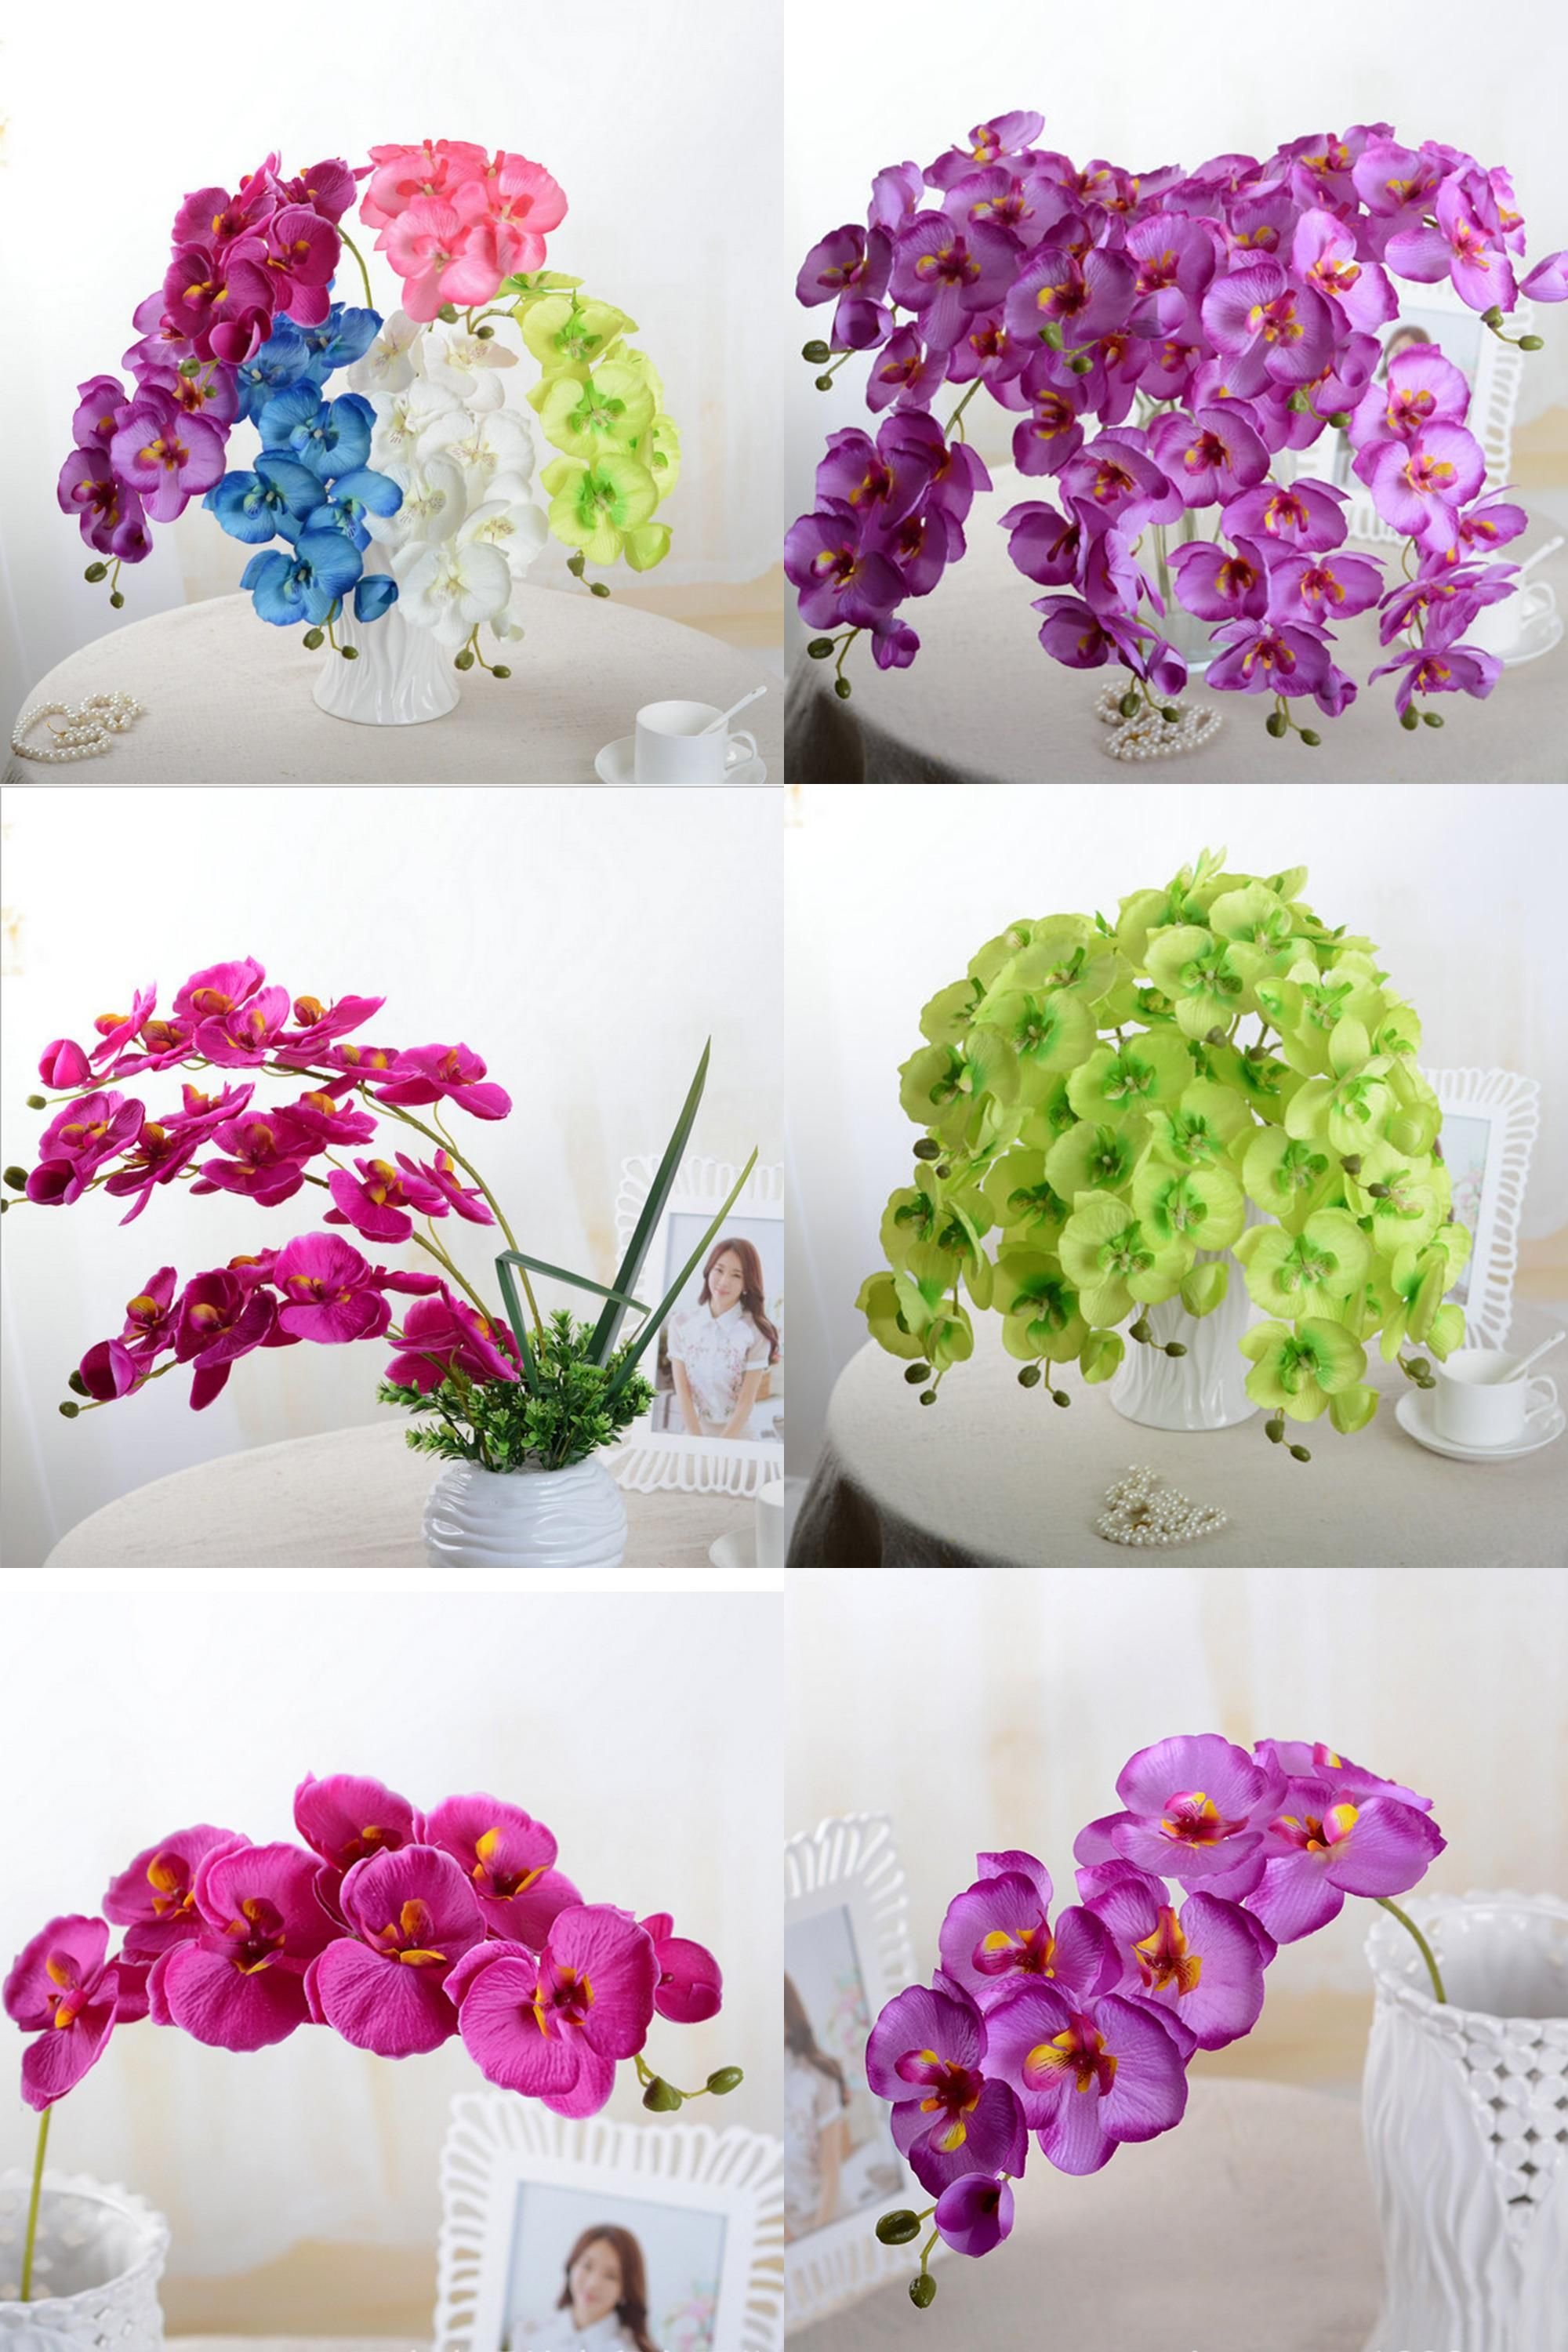 Visit to buy artificial butterfly orchid silk flower bouquet visit to buy artificial butterfly orchid silk flower bouquet phalaenopsis wedding home decor fashion diy living room art decoration izmirmasajfo